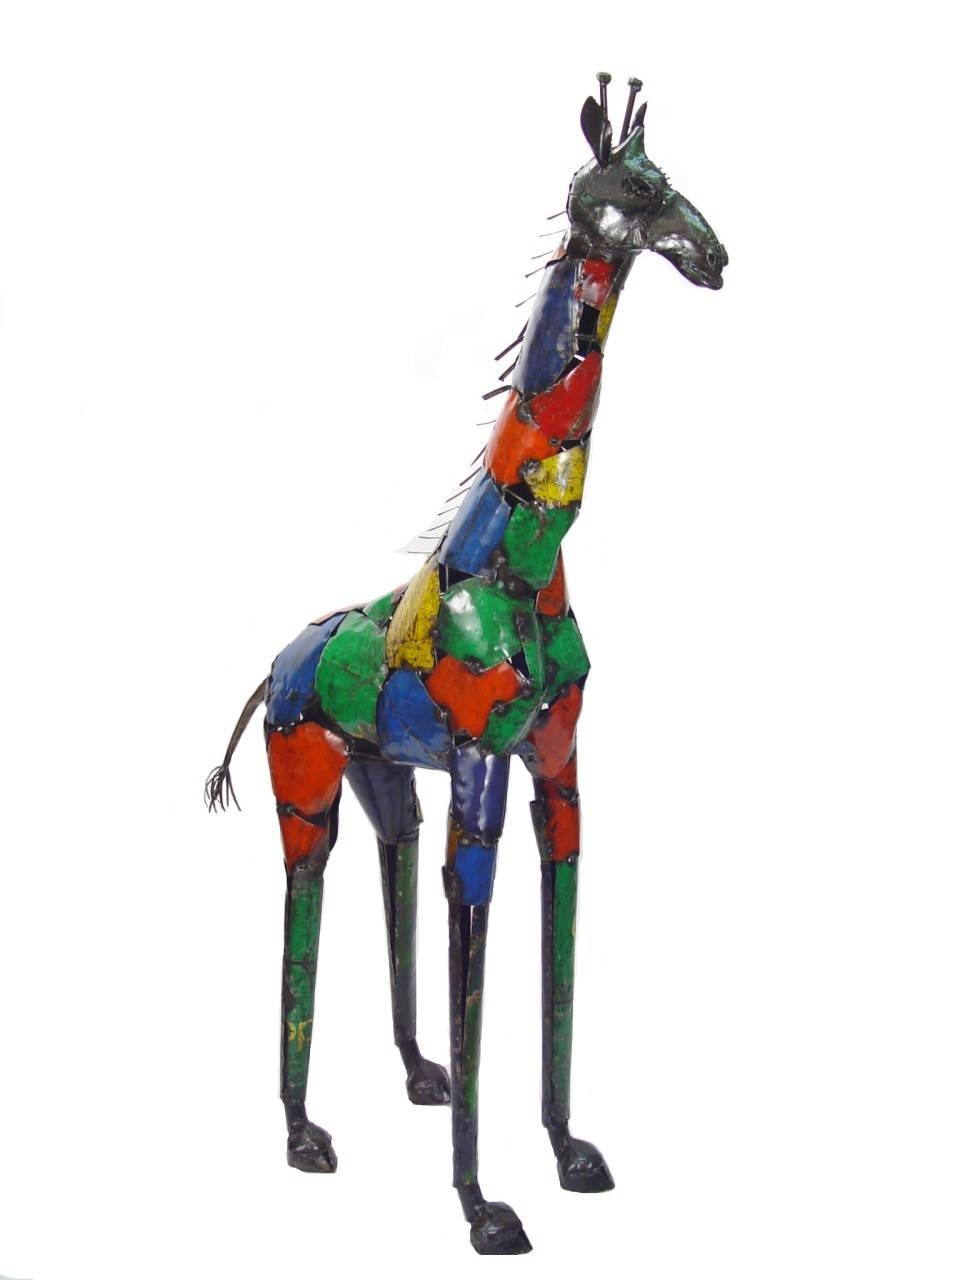 Recycled Metal Giraffe| African Wall Art And Décor| Mbare Ltd In Most Popular Giraffe Metal Wall Art (Gallery 8 of 20)